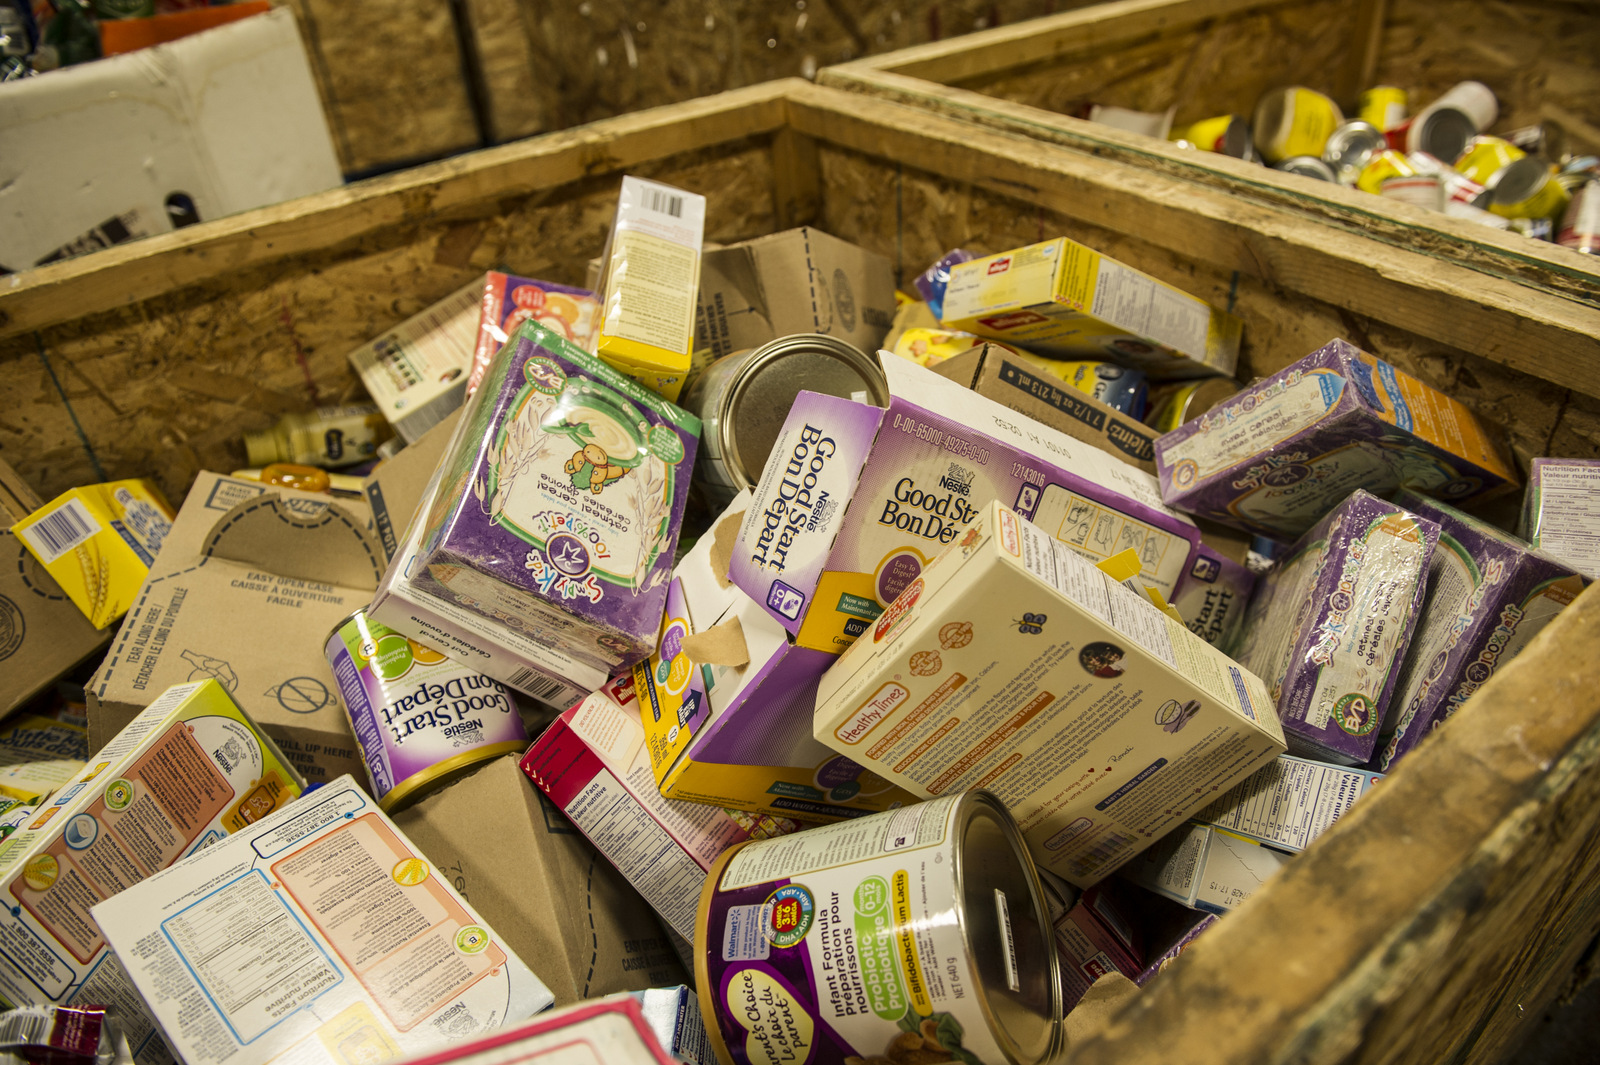 Baby food & baby formula - this is the #1 most needed item at the Food Bank.